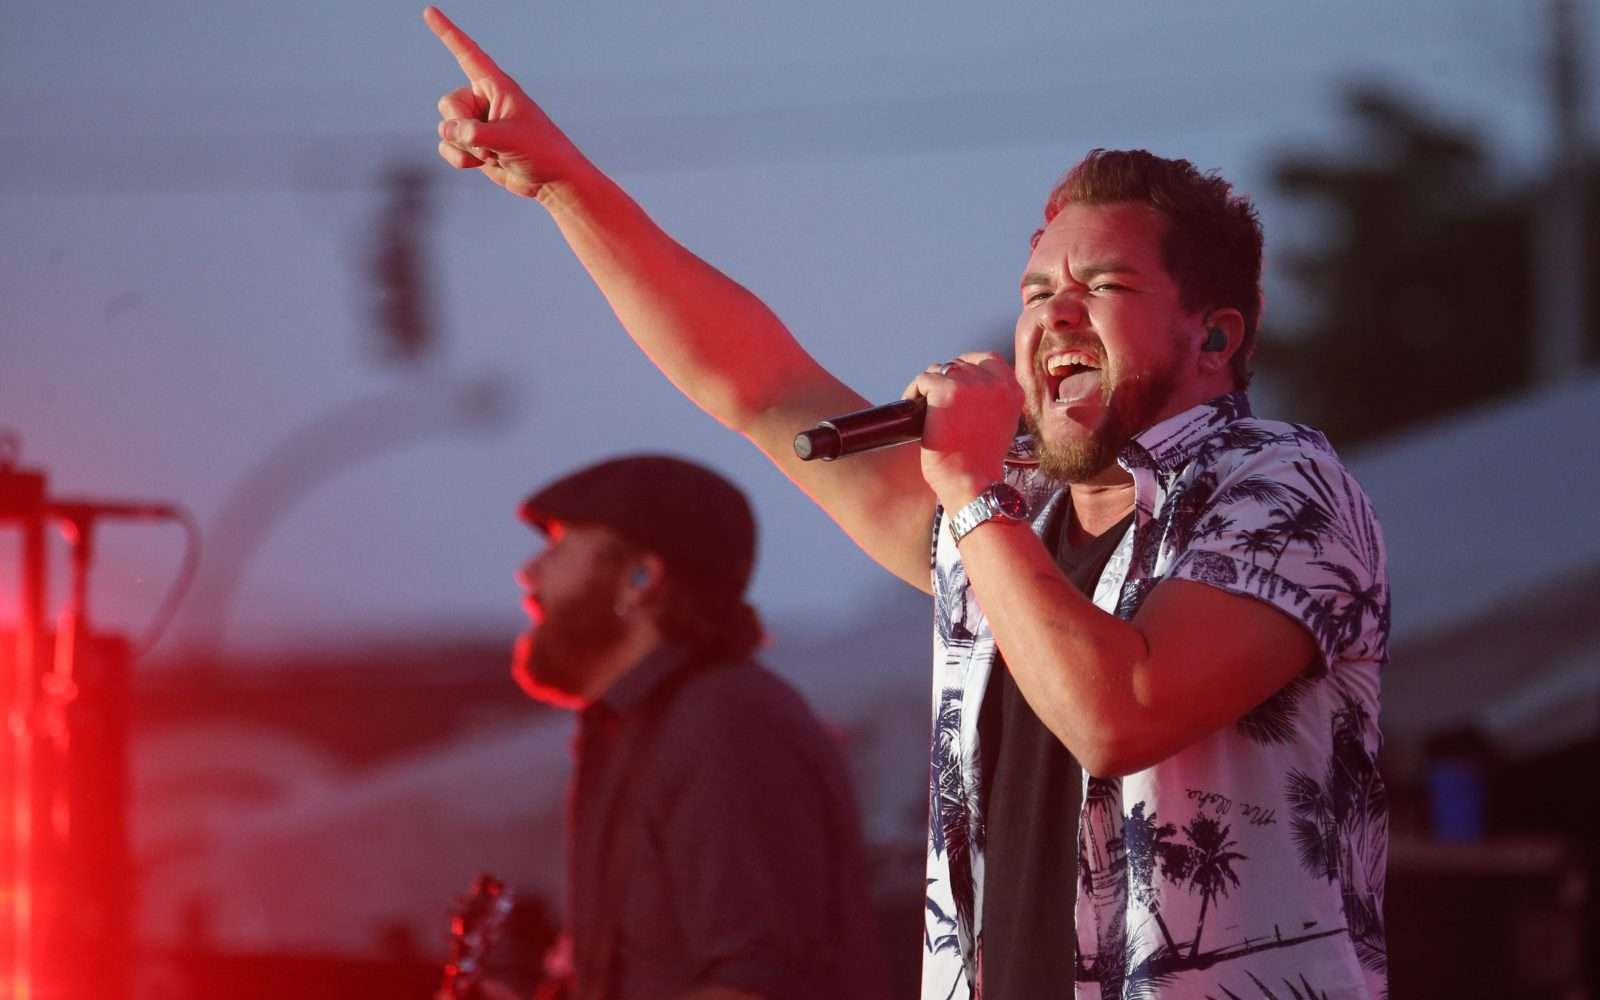 The Eli Young Band, with singer Mike Eli, performs at Friday's Taste of Country at Coca Cola Field. (Sharon Cantillon/Buffalo News)